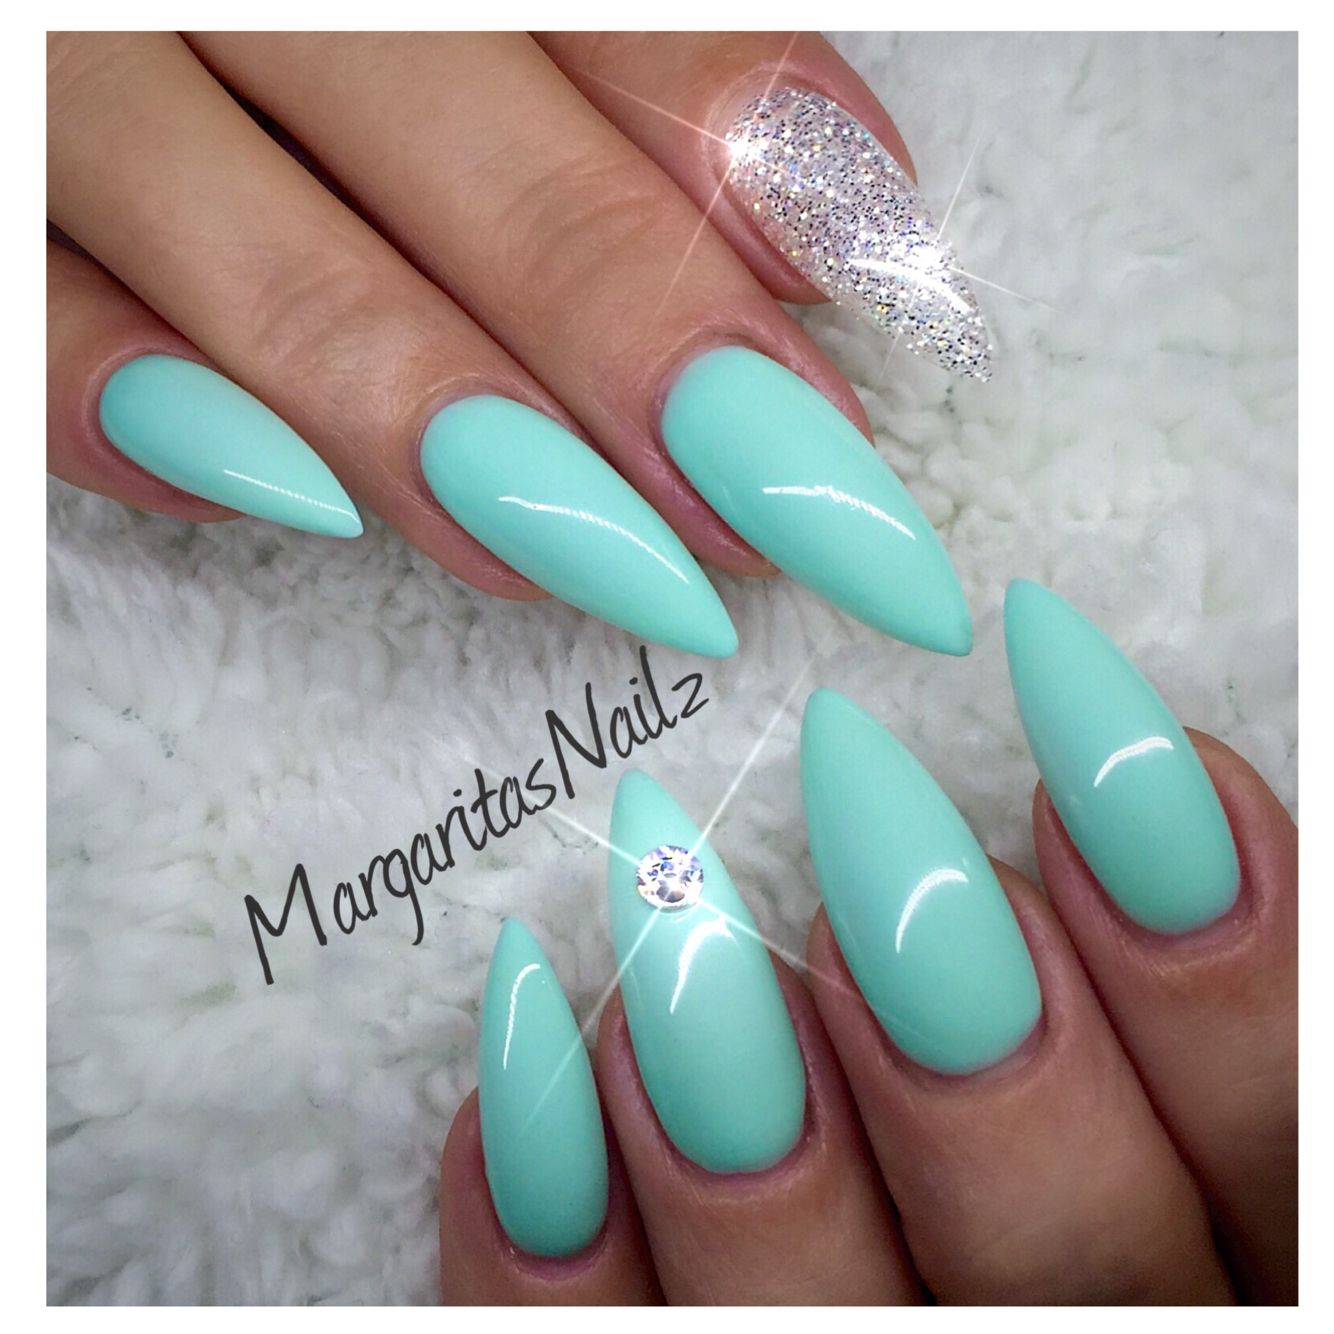 Pin von Allisonn Rae auf Stiletto Nails | Pinterest | Fingernägel ...